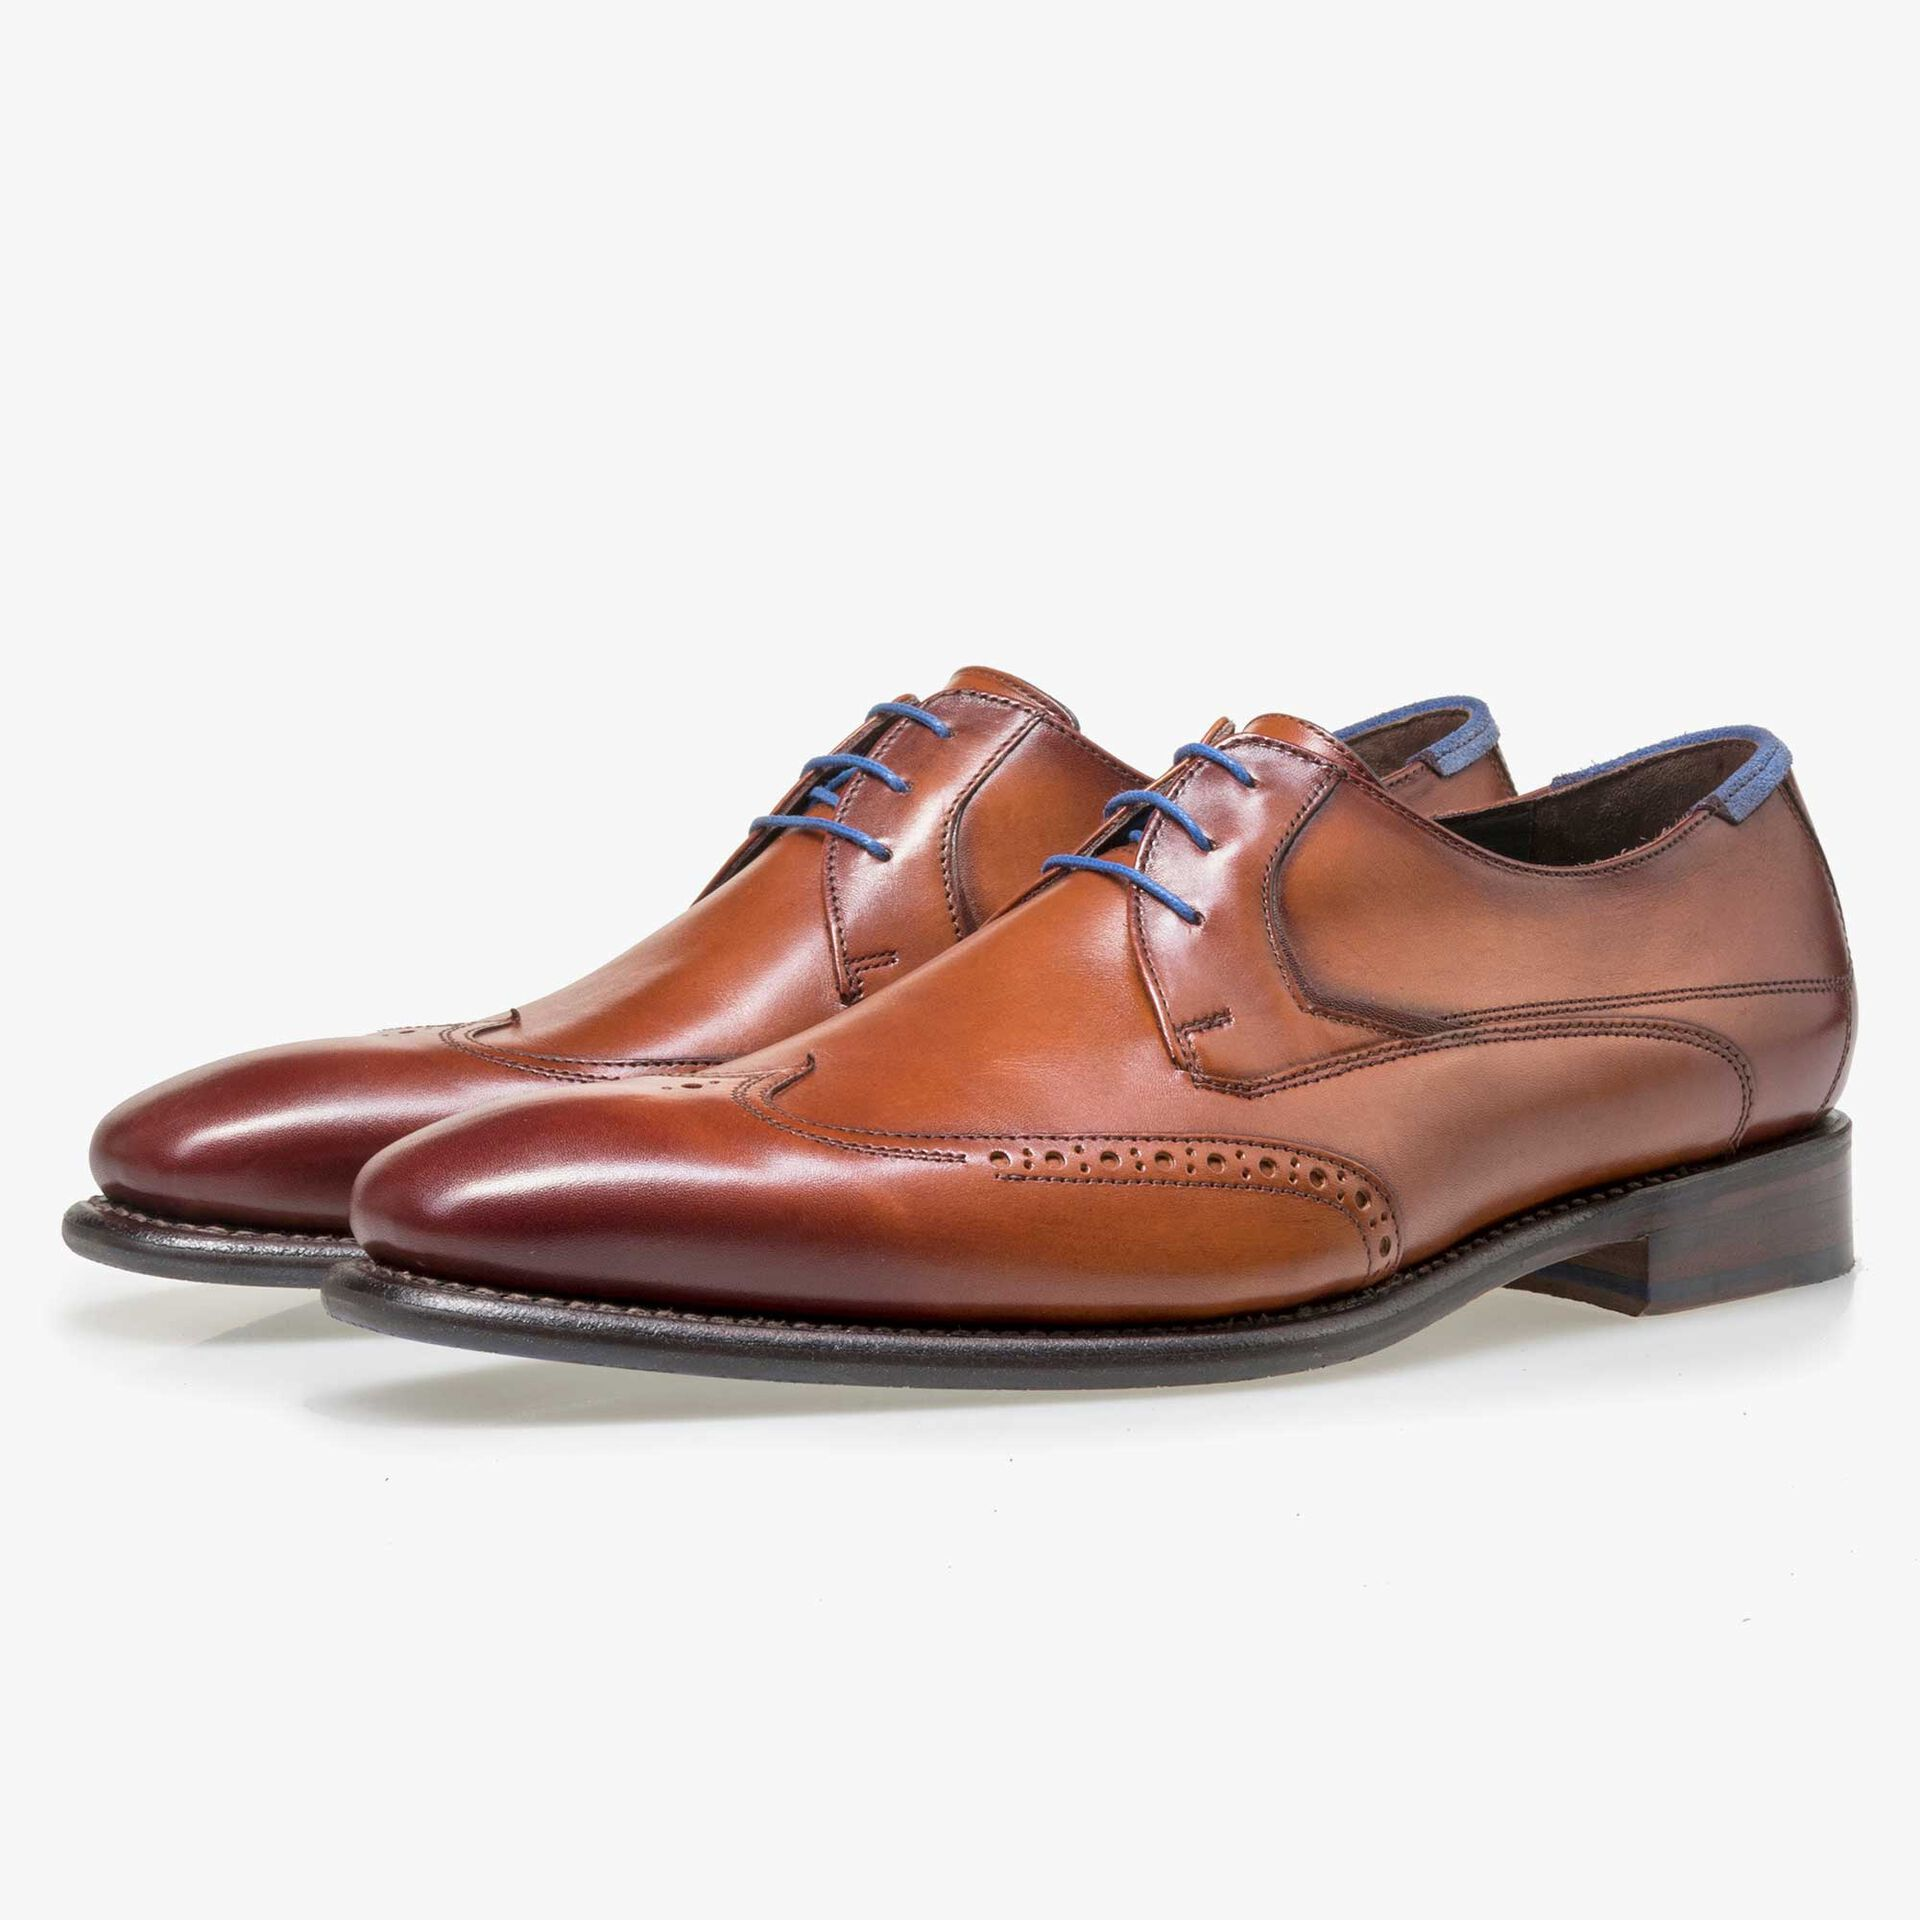 Floris van Bommel men's cognac-coloured leather lace shoe